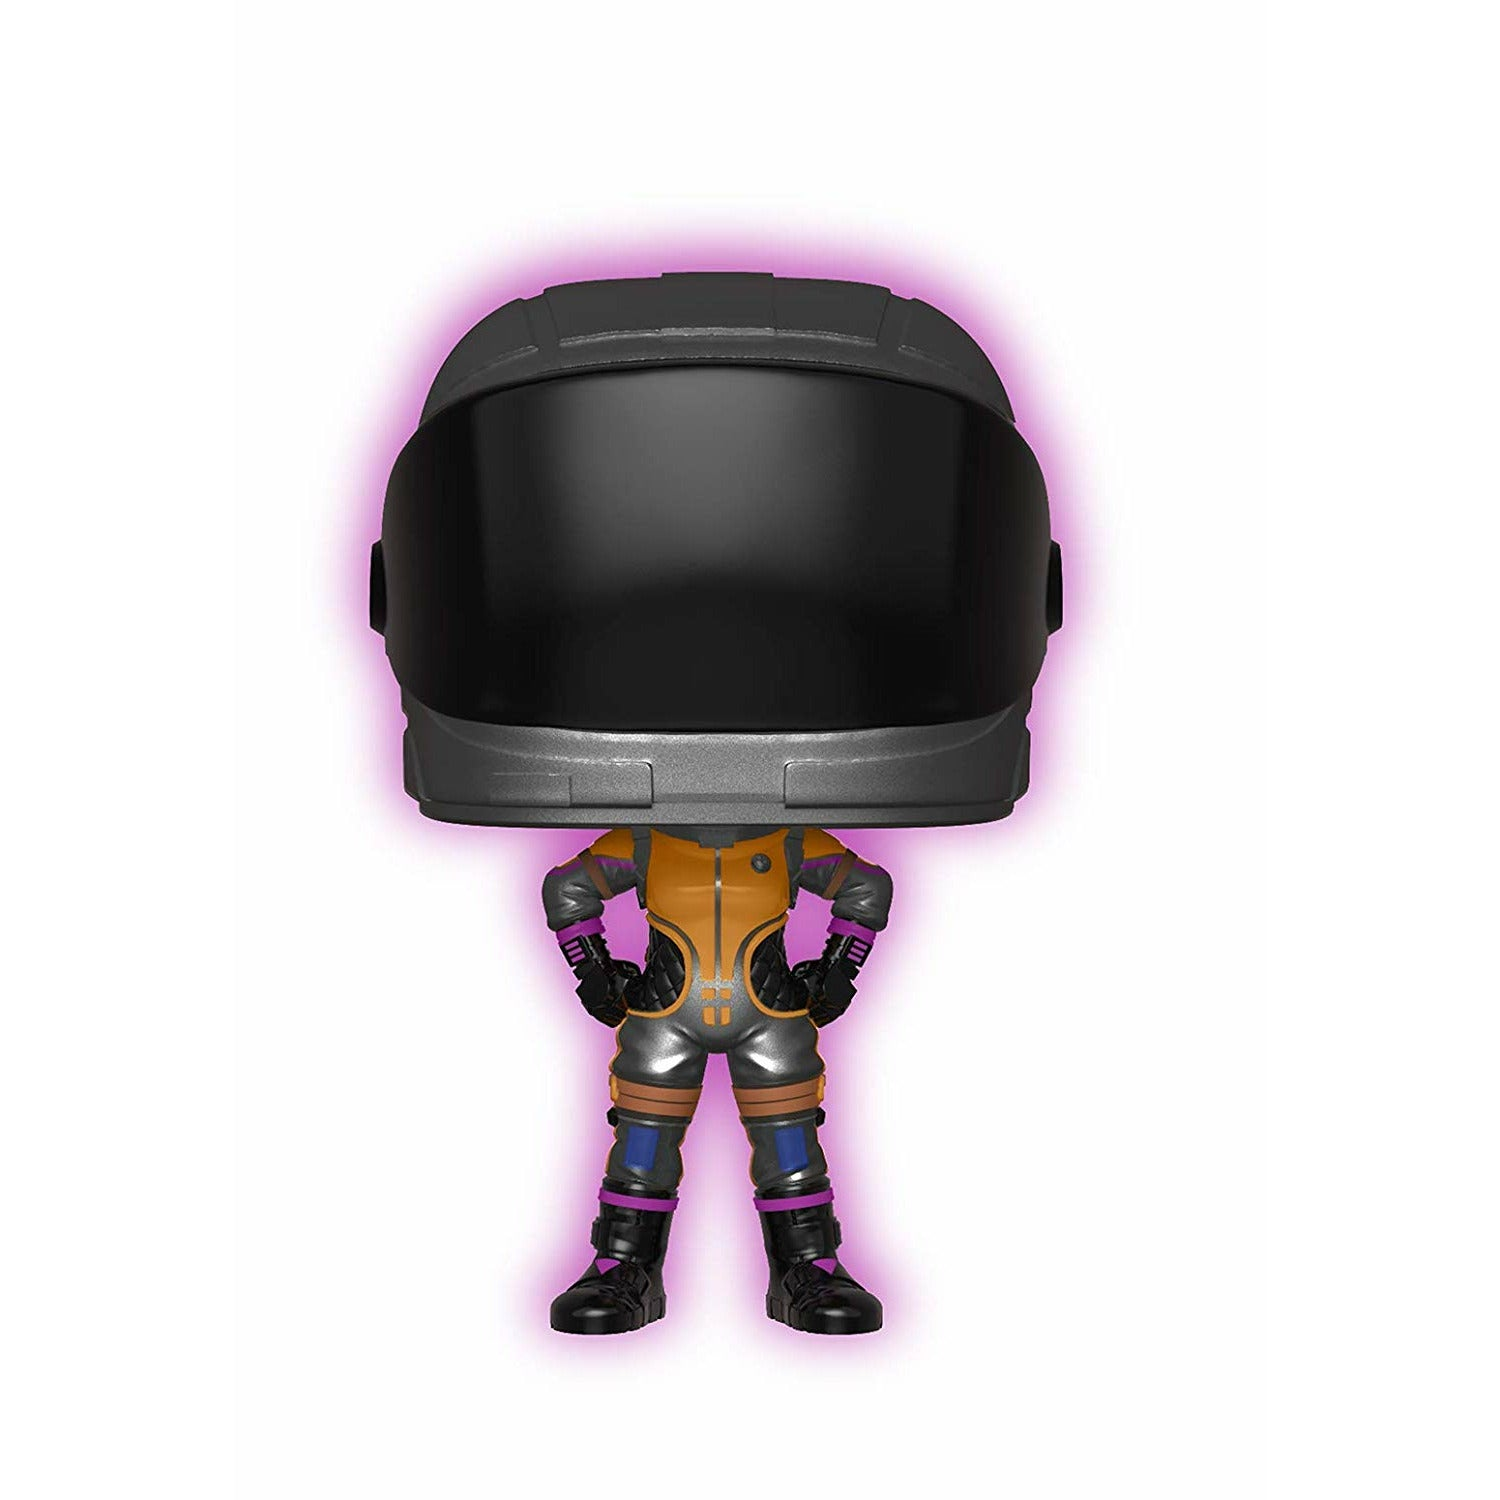 Fortnite Dark Vanguard Glow in the Dark Pop! Games Vinyl Figure